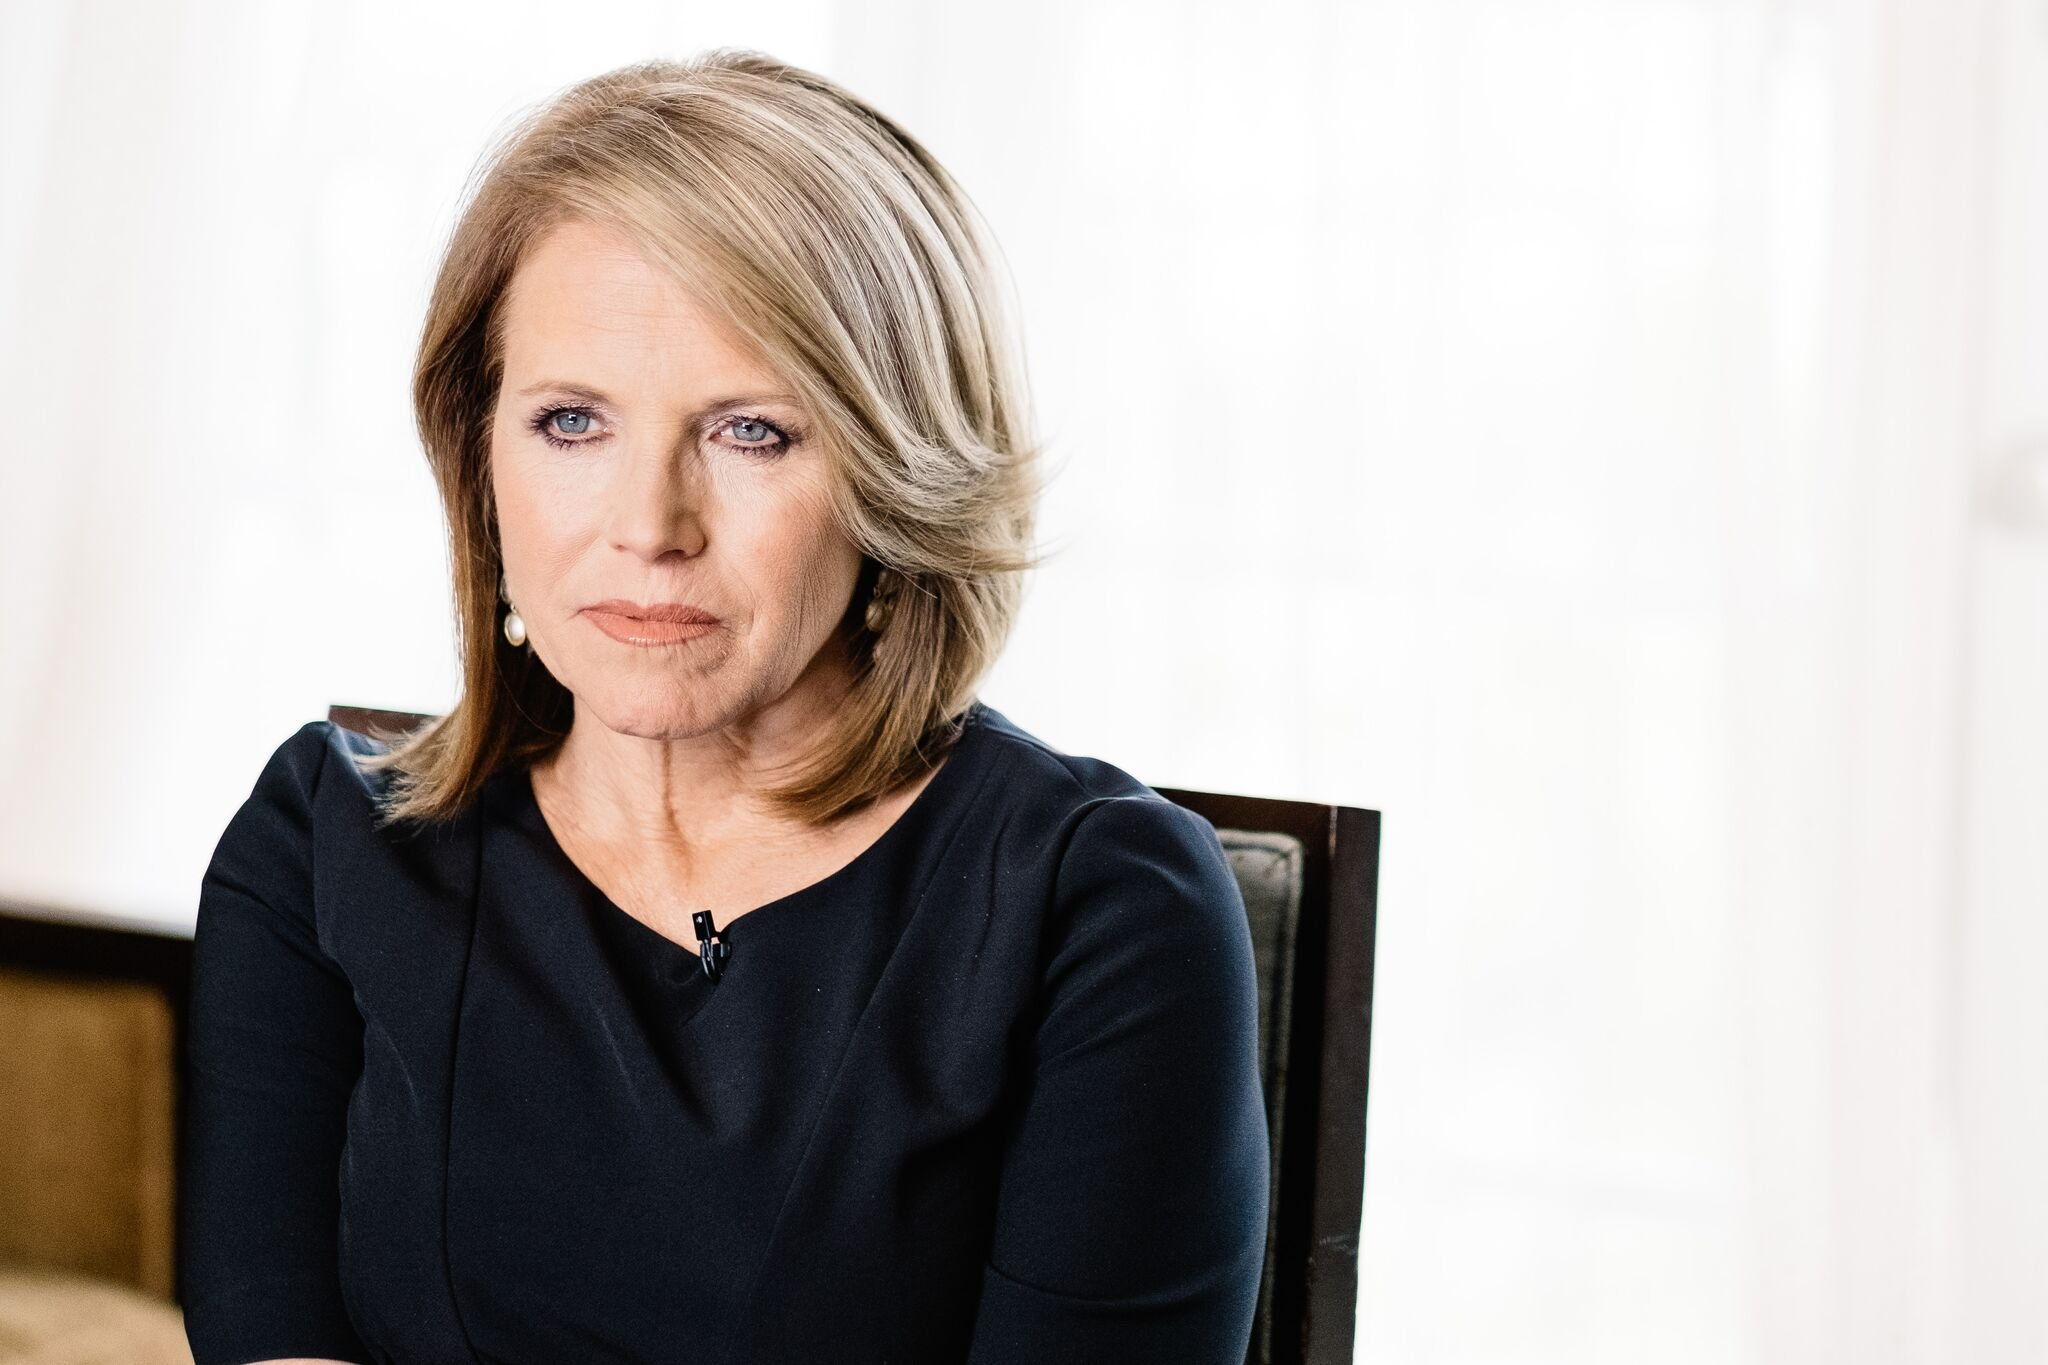 """Katie Couric speaks during an interview promoting the EPIX Original Documentary """"Under The Gun"""" 